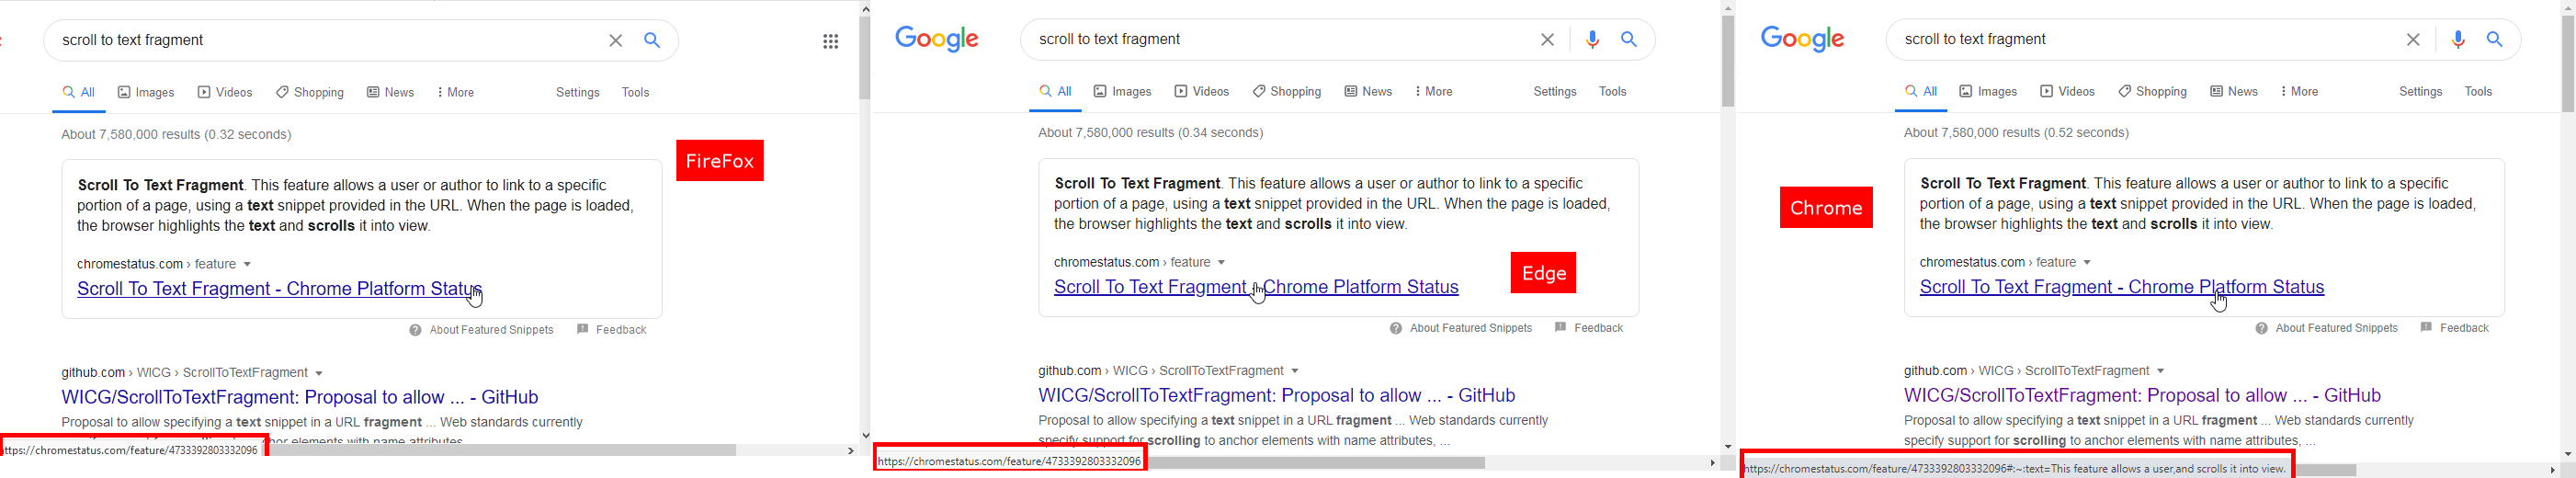 Google Automatically Adds Scroll To Text Fragment to Featured Snippets in SERPs on Chrome 3 - SEO News